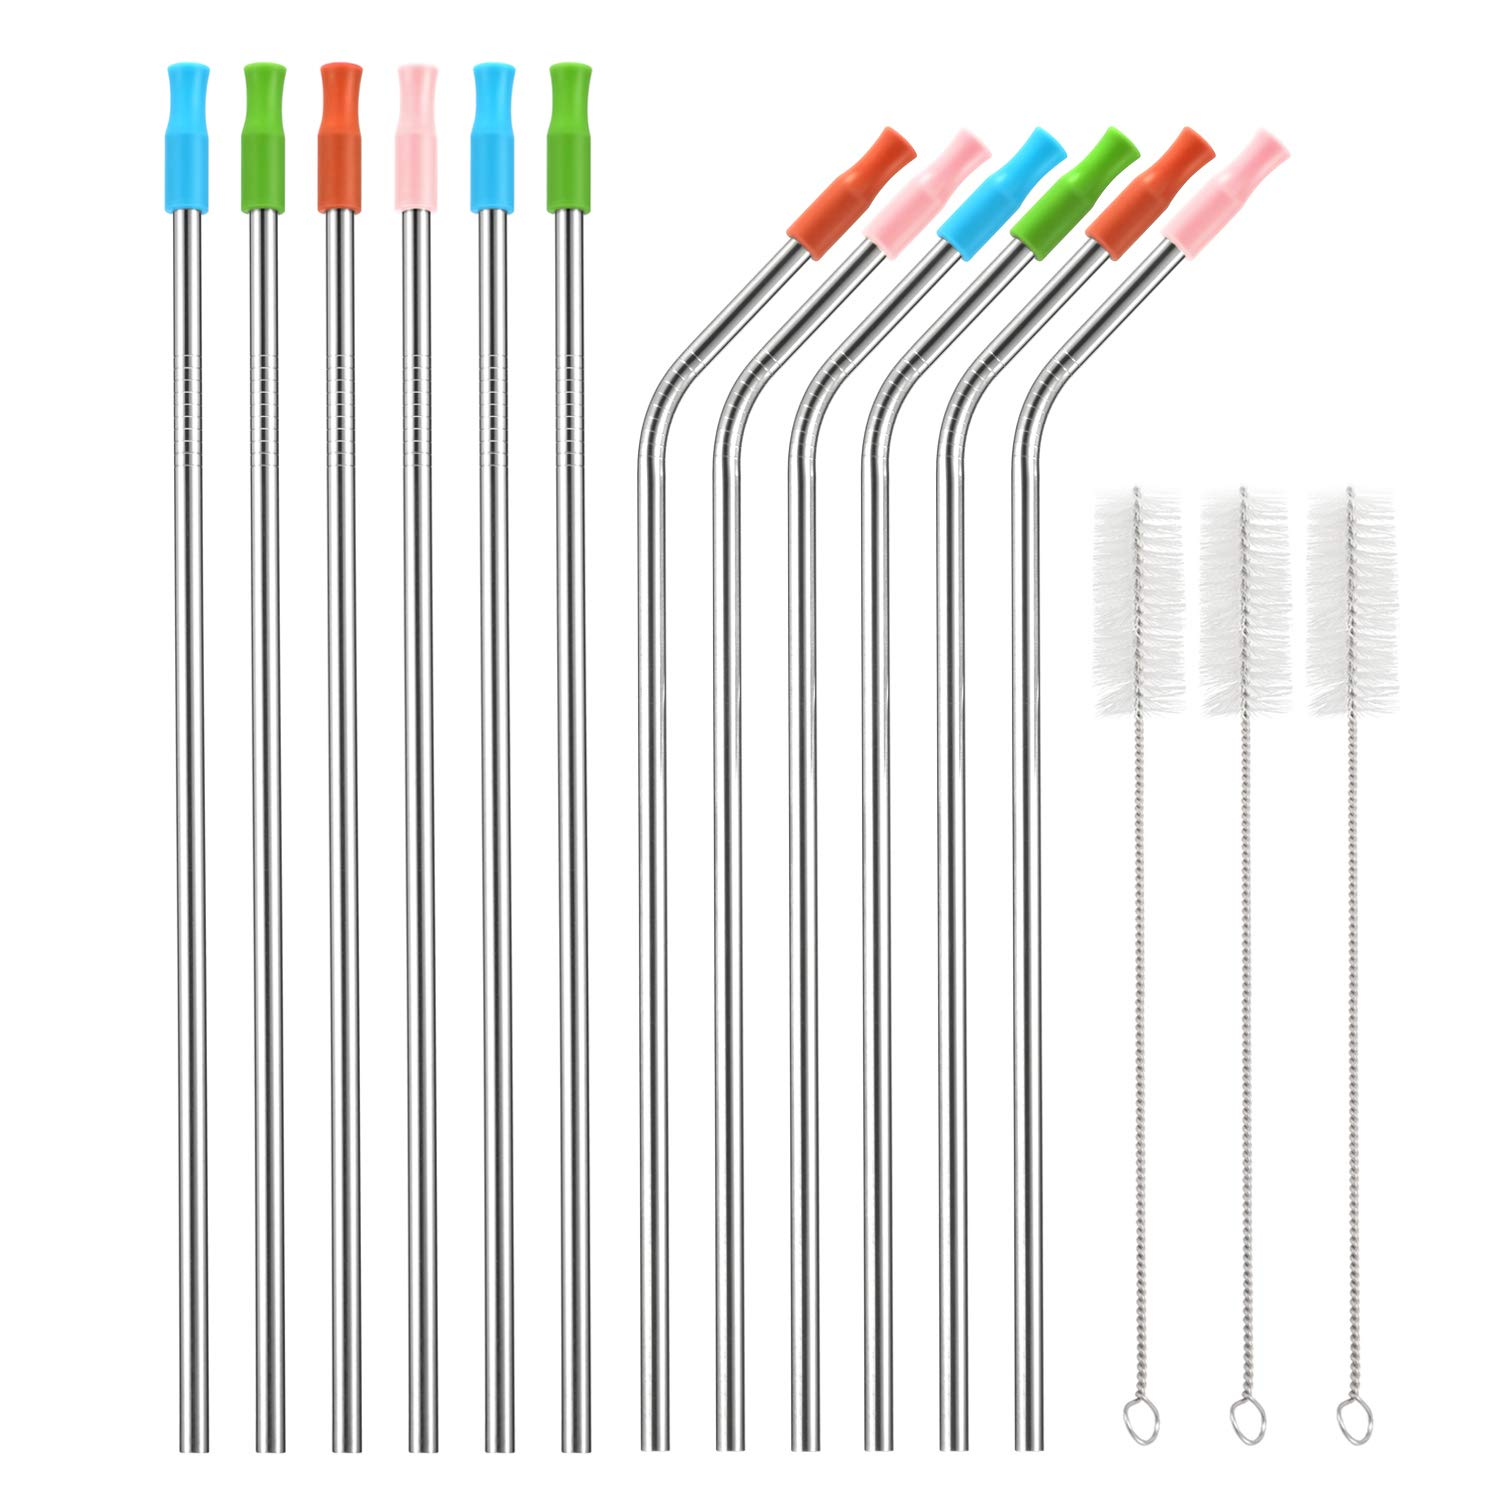 x-chef-reusable-stainless-steel-drinking-straws-with-silicone-tips